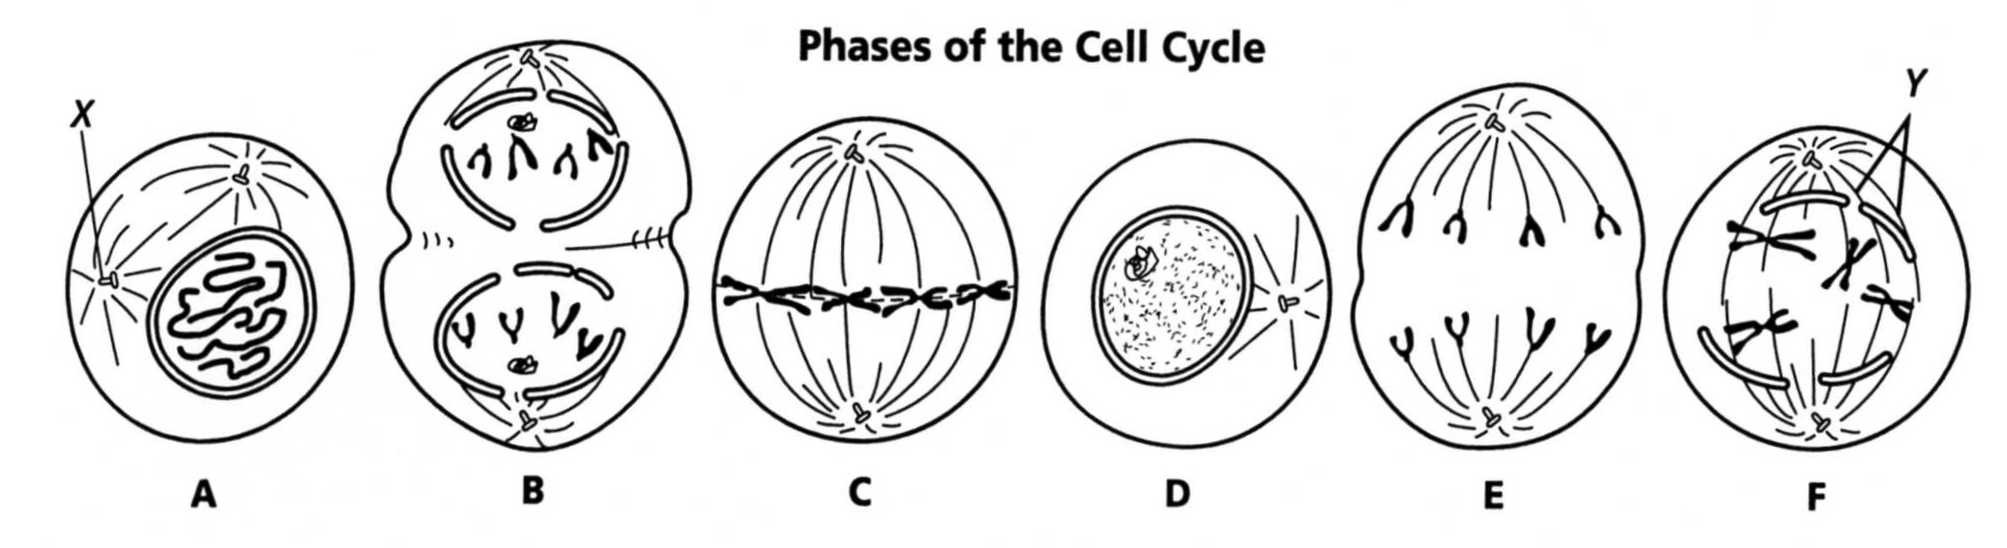 worksheet Mitosis Worksheet Diagram Identification Answers – Phases of the Cell Cycle Worksheet